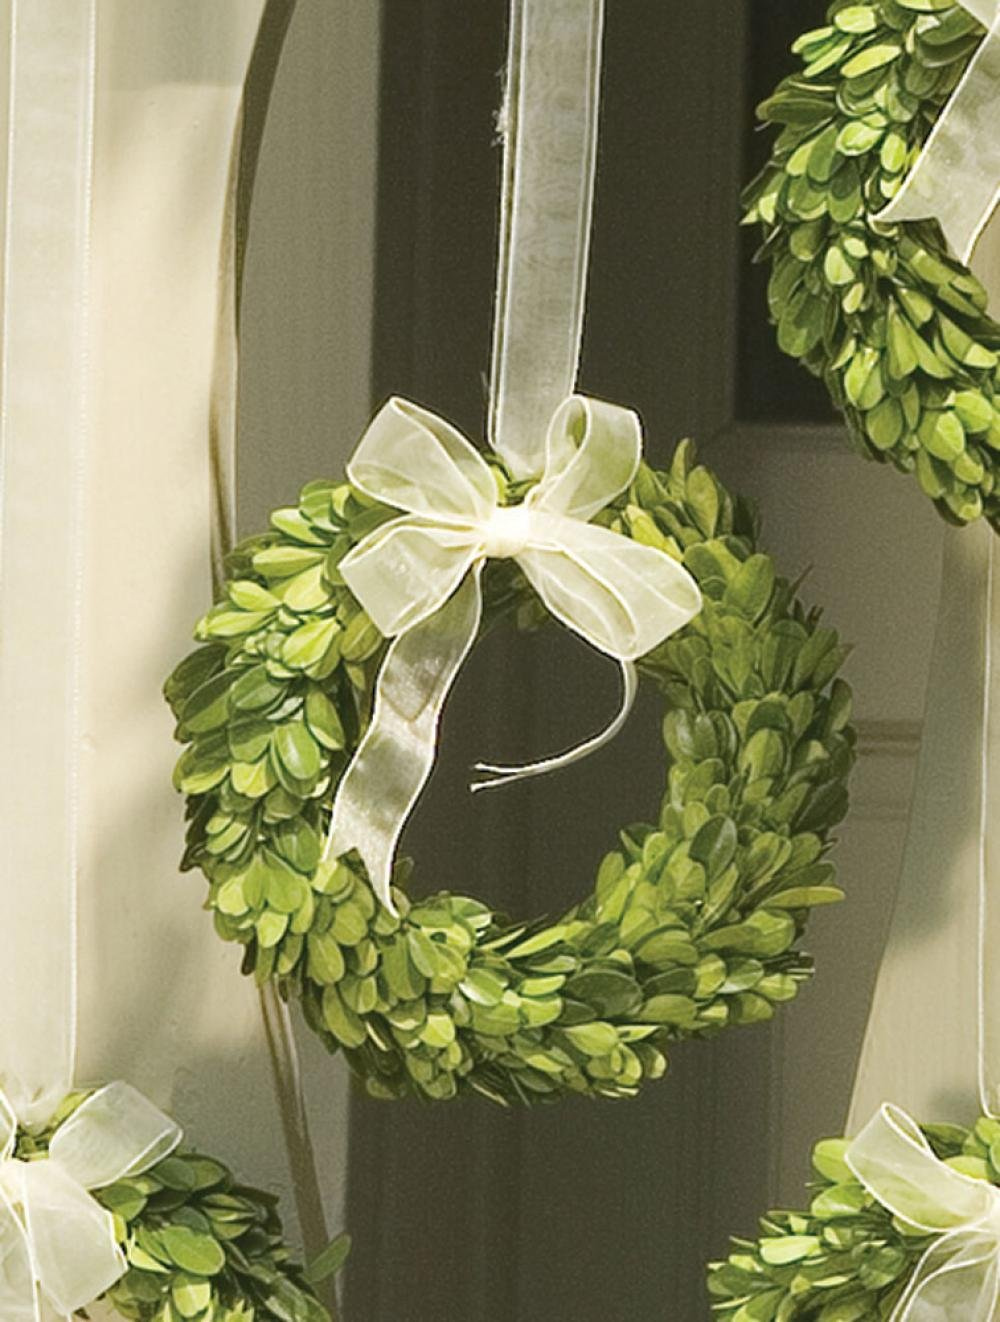 Napa Home & Garden 6-inch Preserved Boxwood Wreath with Ribbon 7509SPG